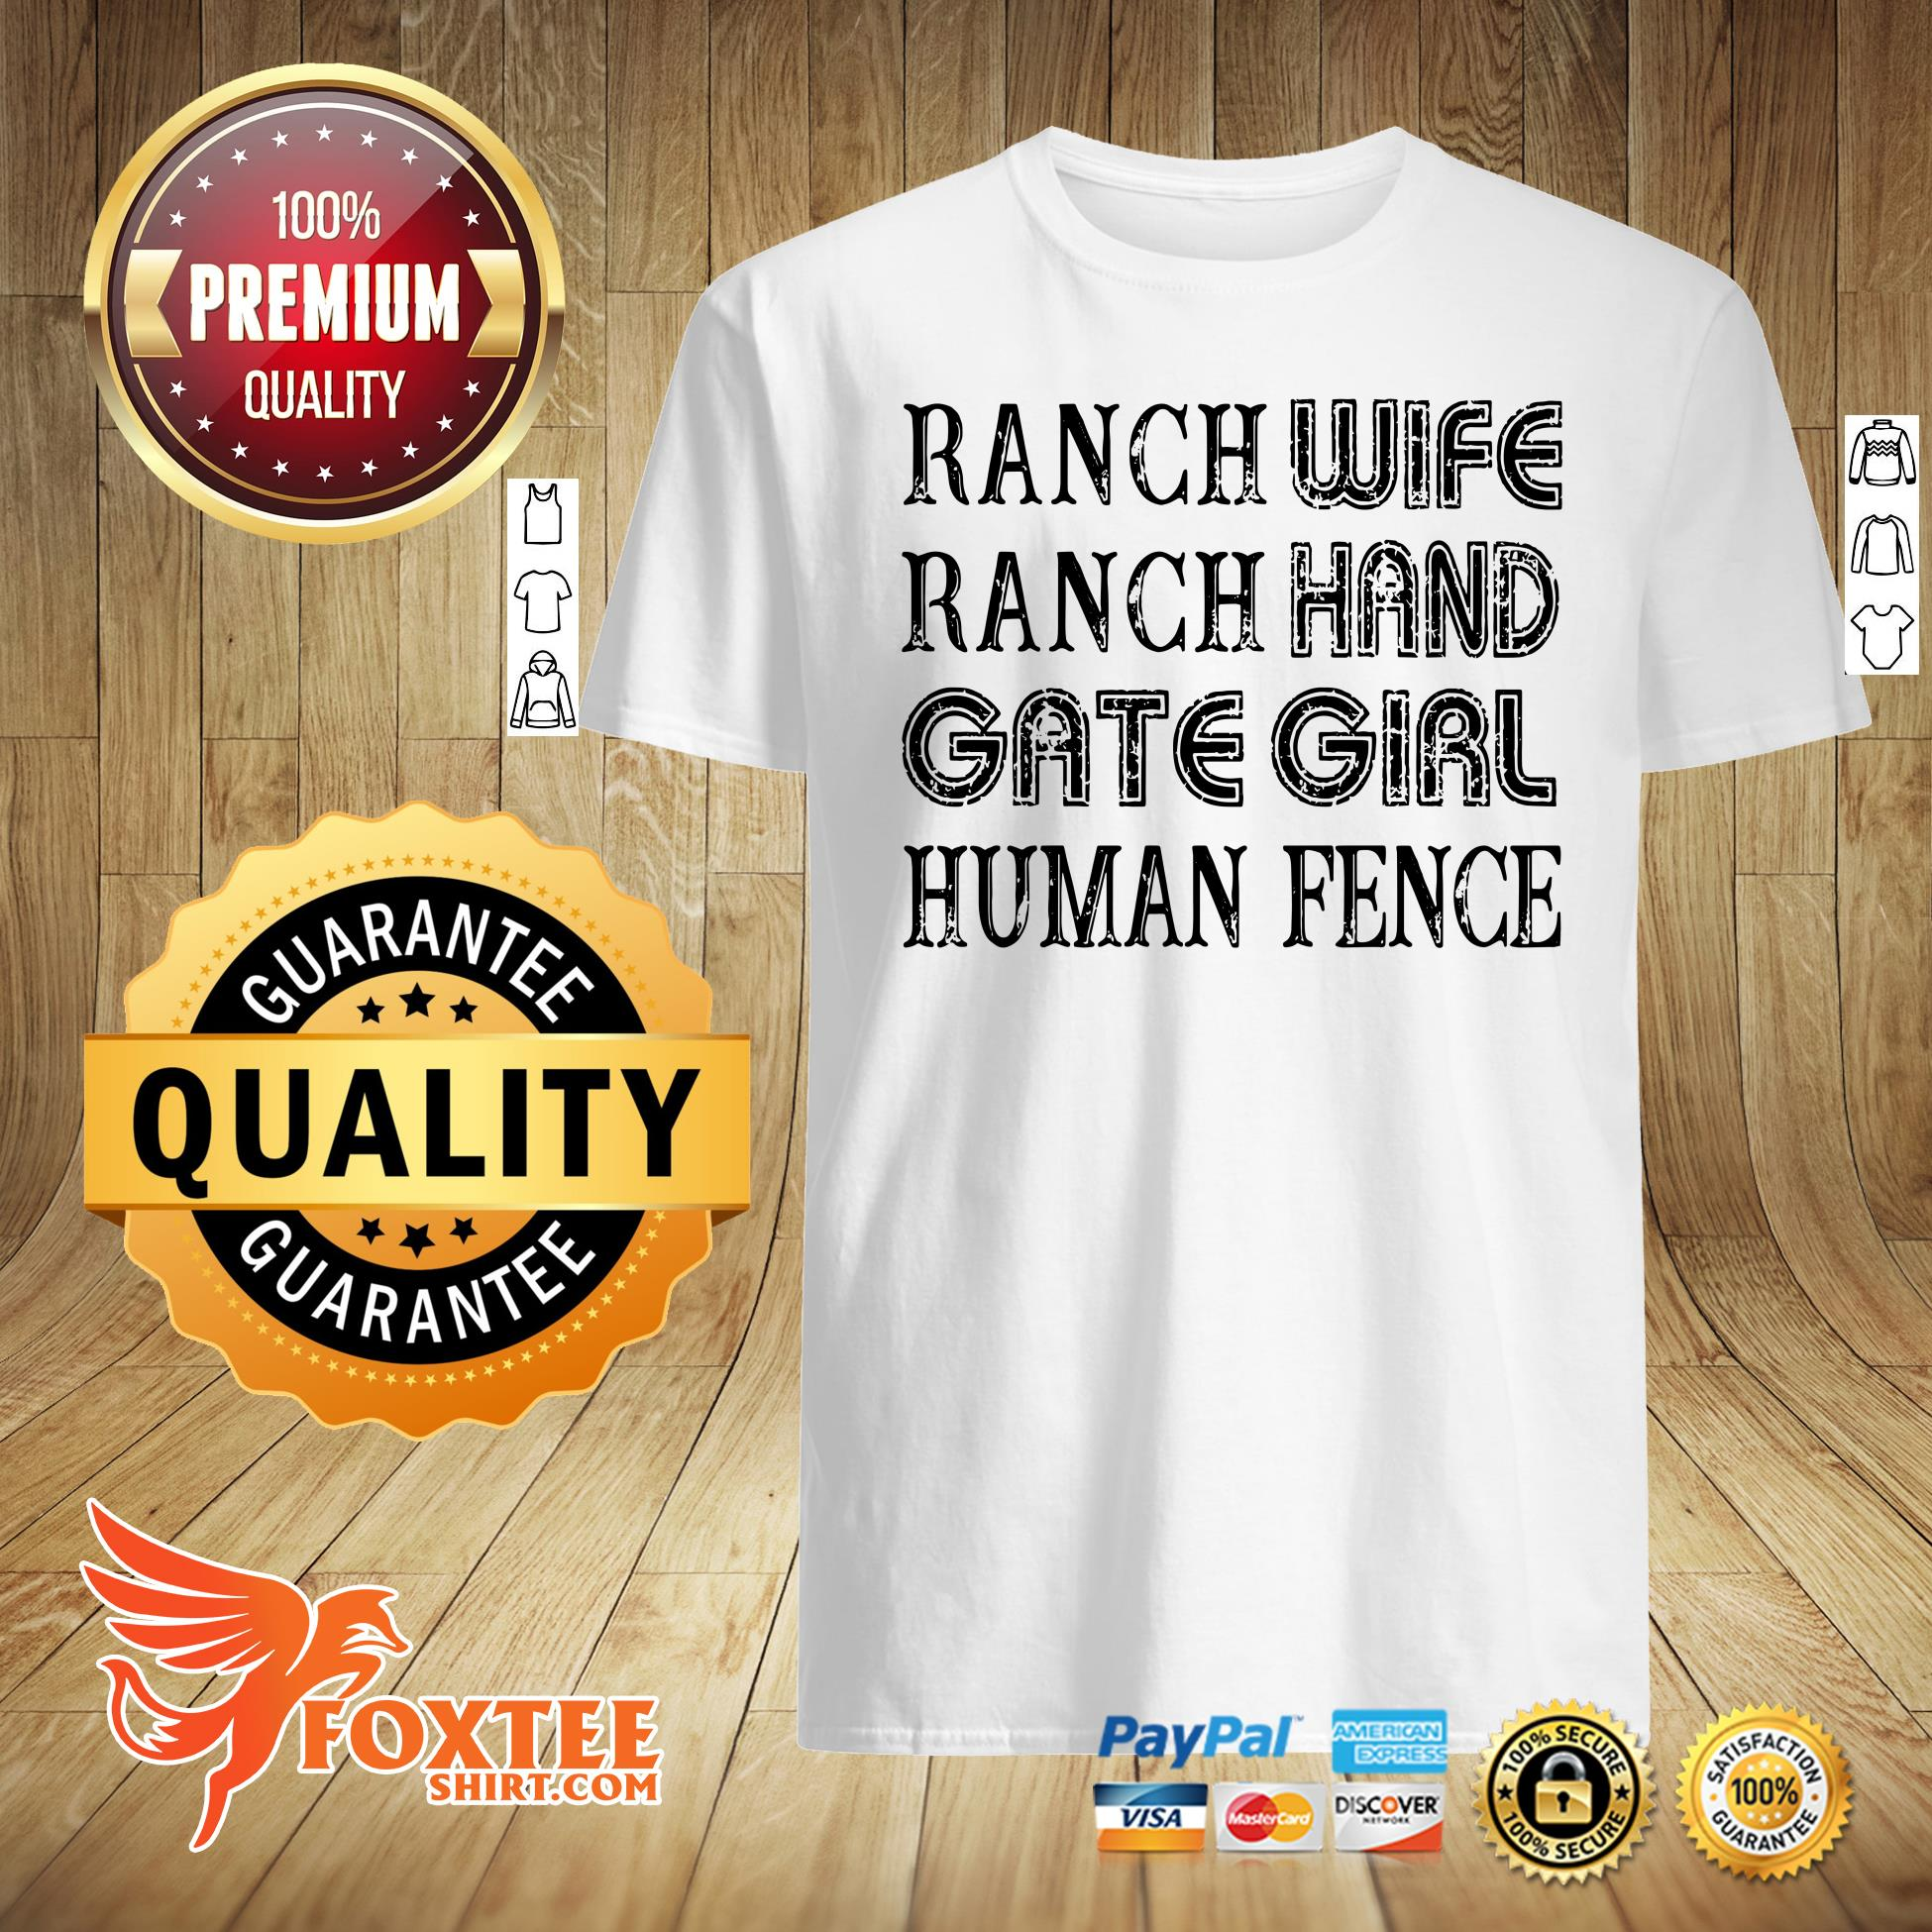 Ranch Wife Ranch Hand Gate Girl Human Fence Shirt